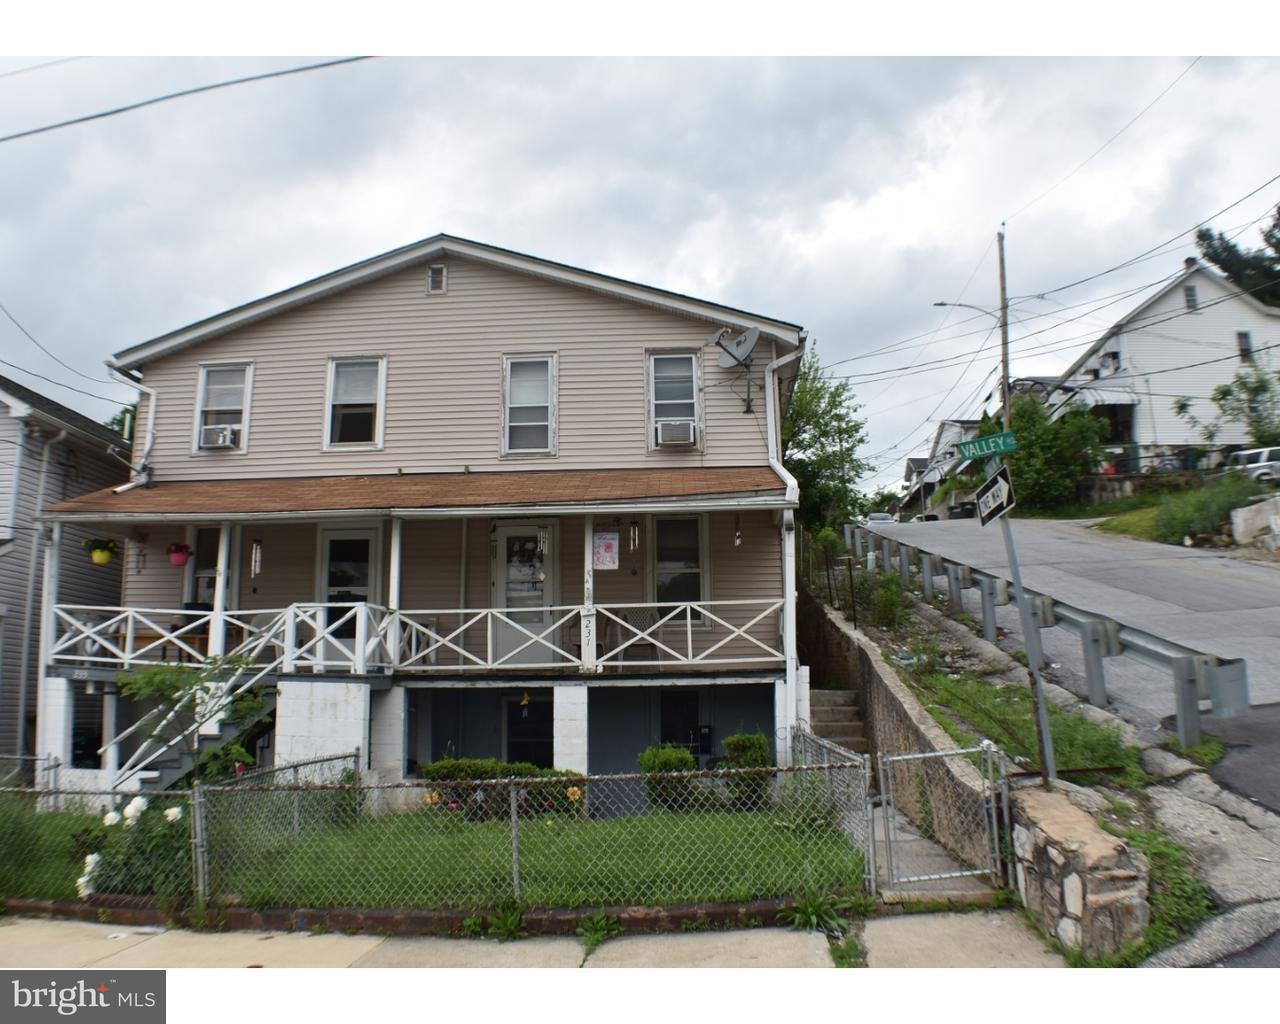 231 E VALLEY RD, COATESVILLE - Listed at $75,000, COATESVILLE